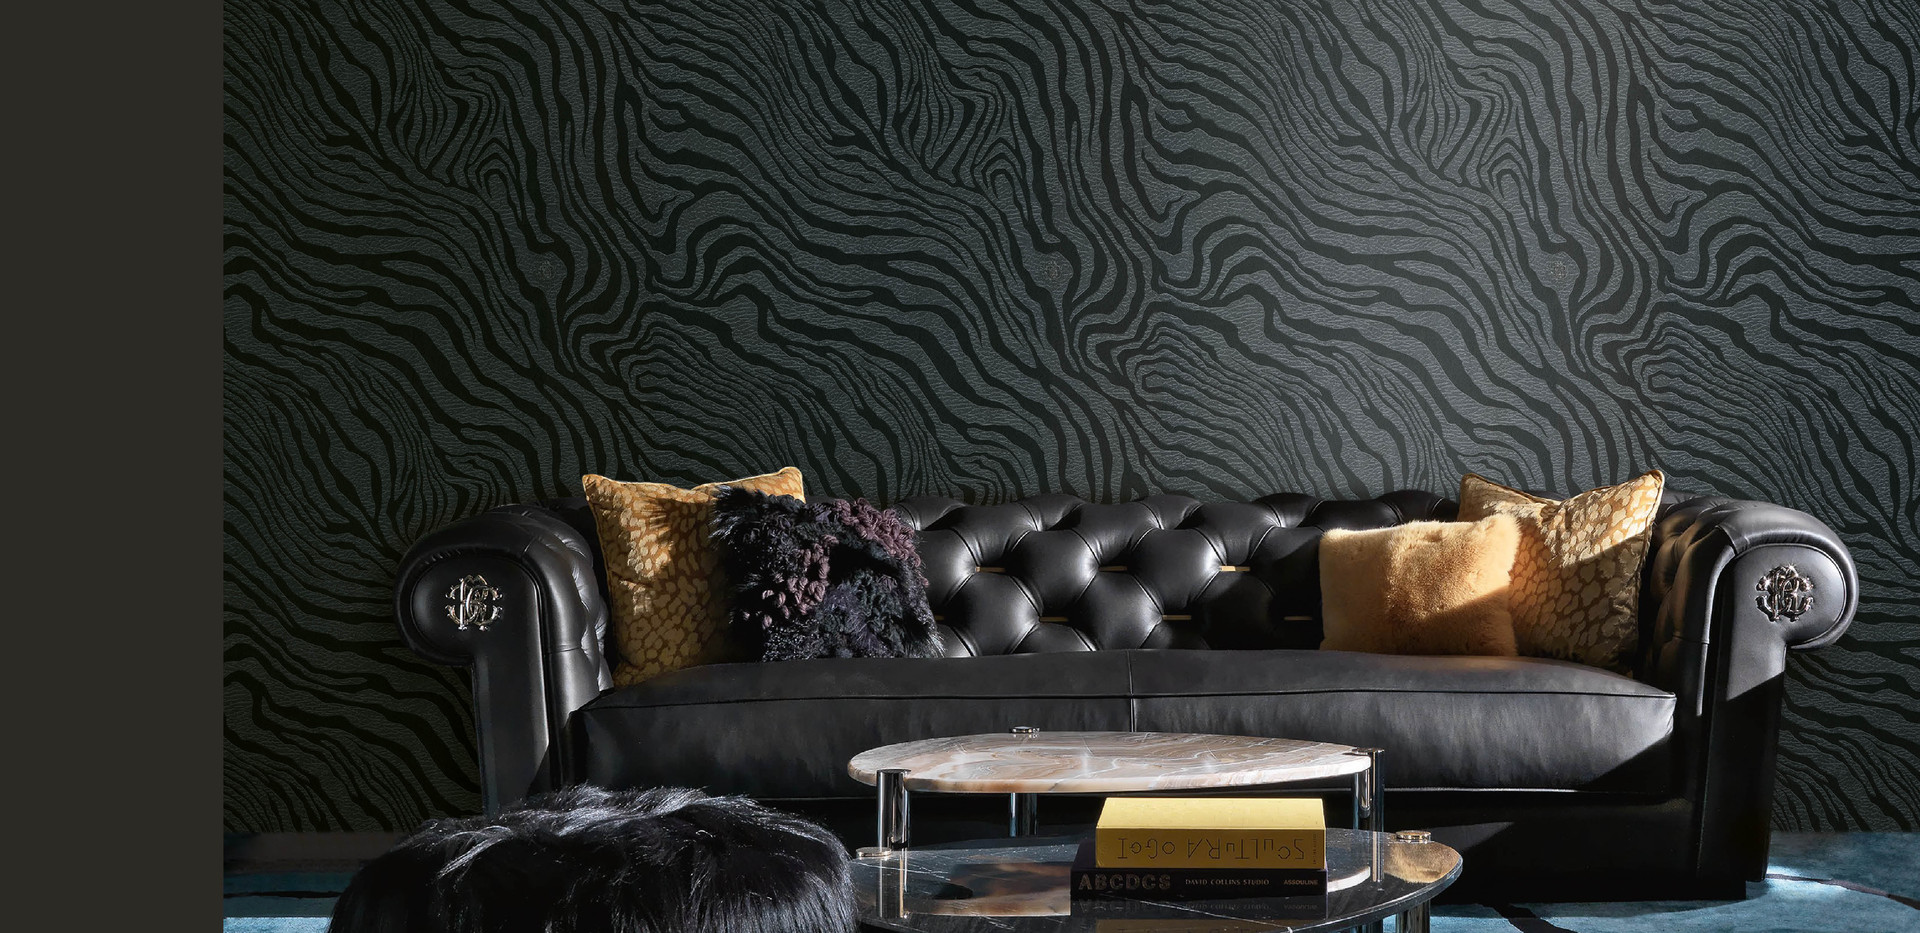 LifeNcolors-best-wallpaper-branded-luxury-pattern-texture-abstract